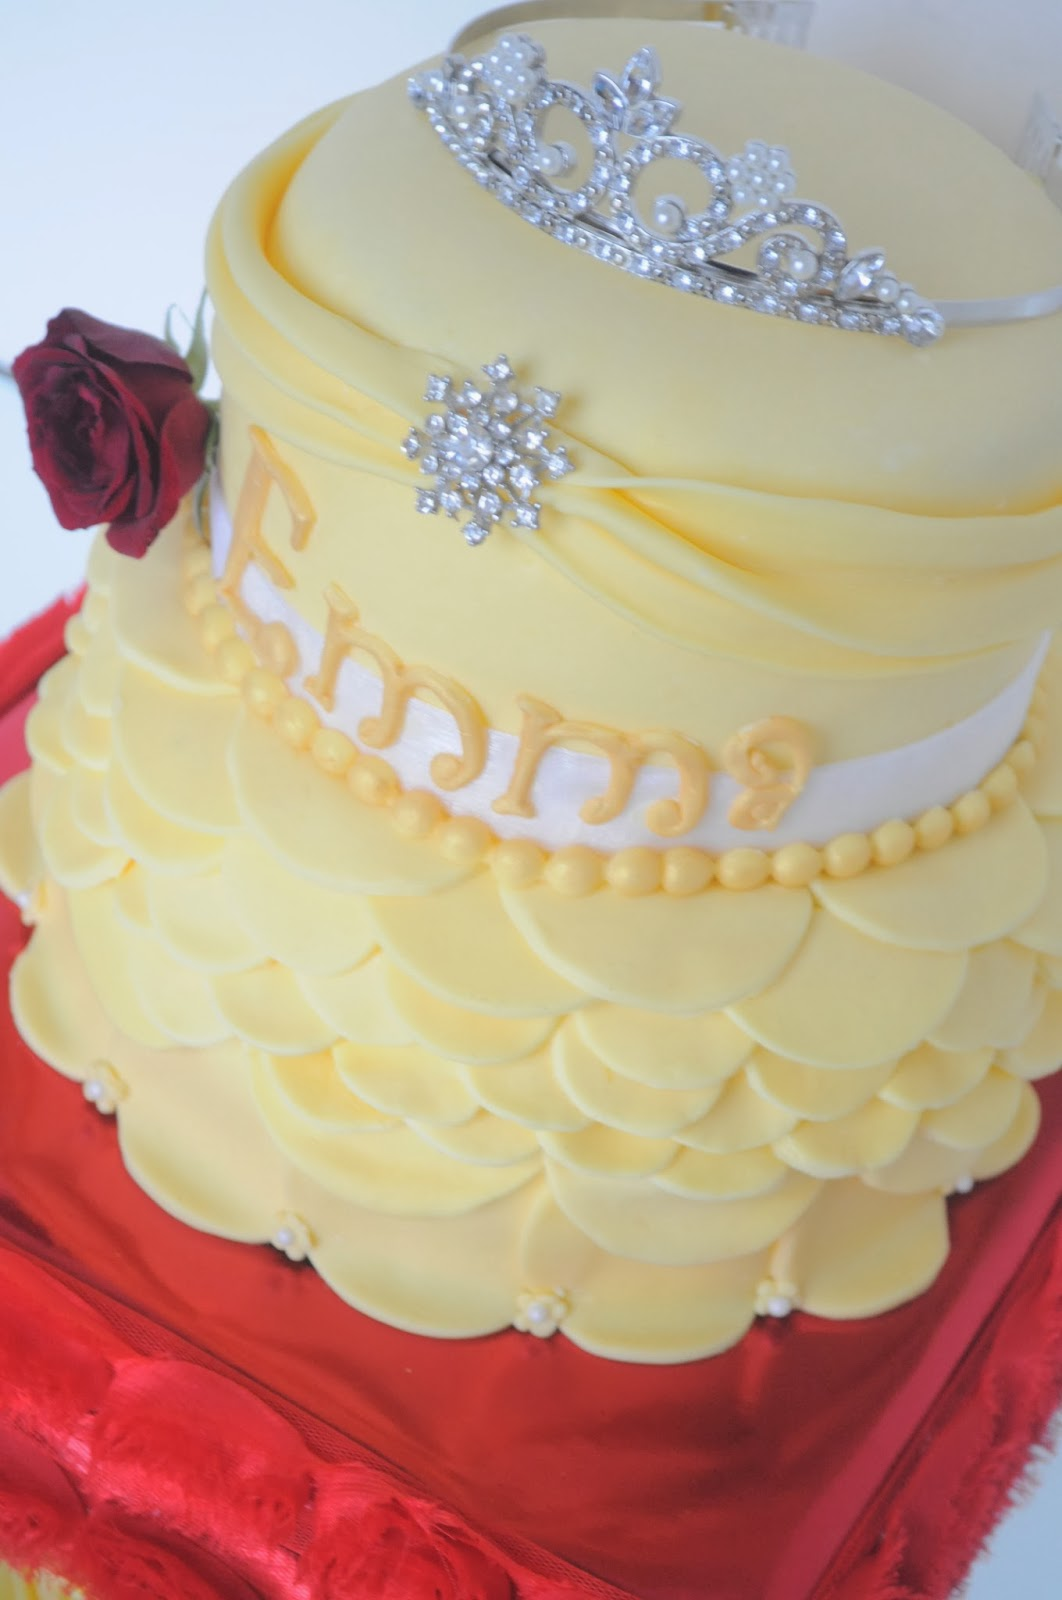 Princess Belle Cake Design Perfectend for